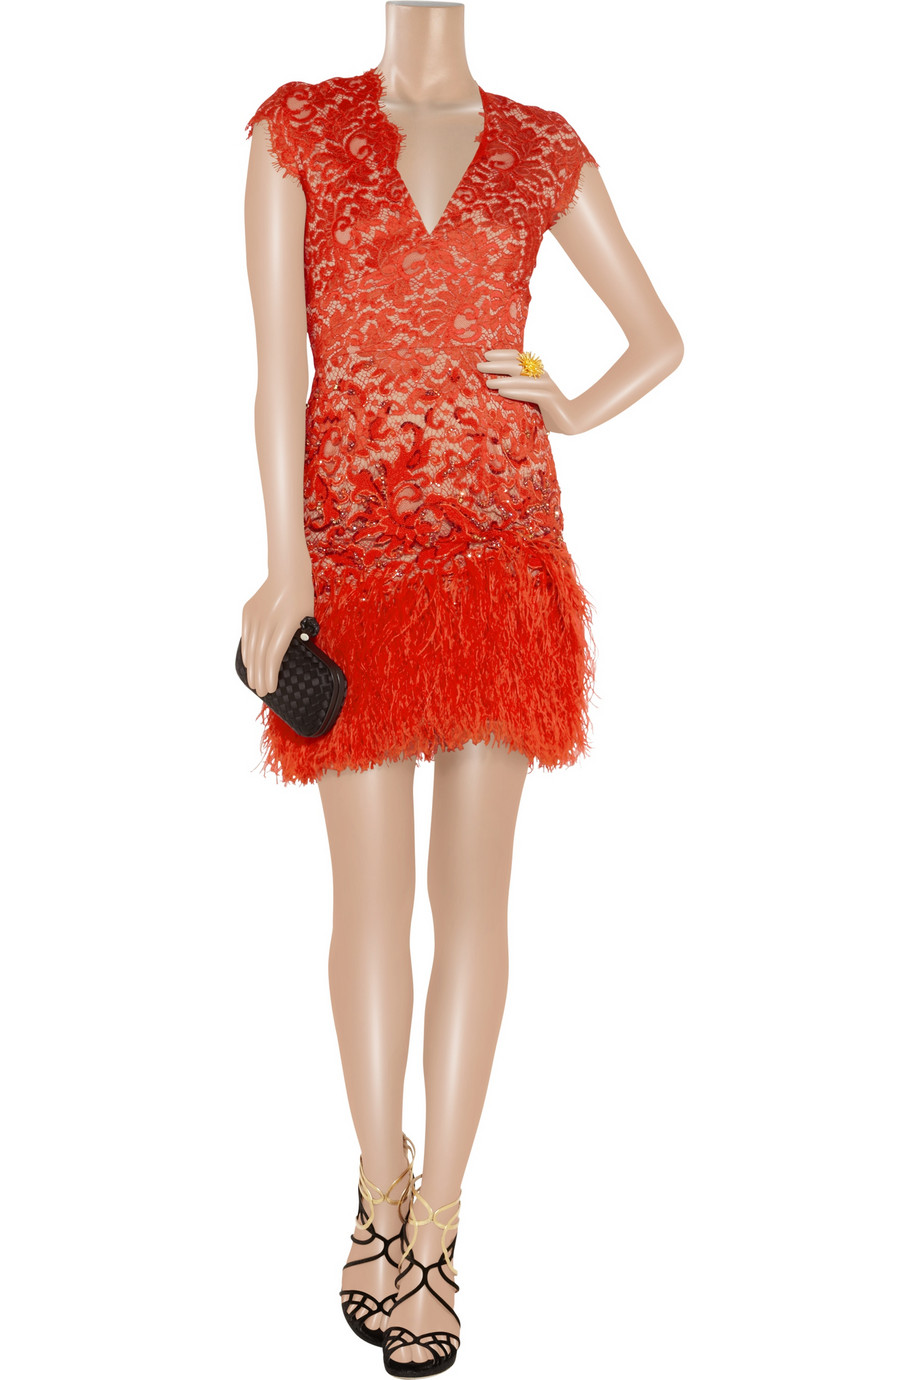 Matthew Williamson Feathertrimmed Embellished Lace Dress